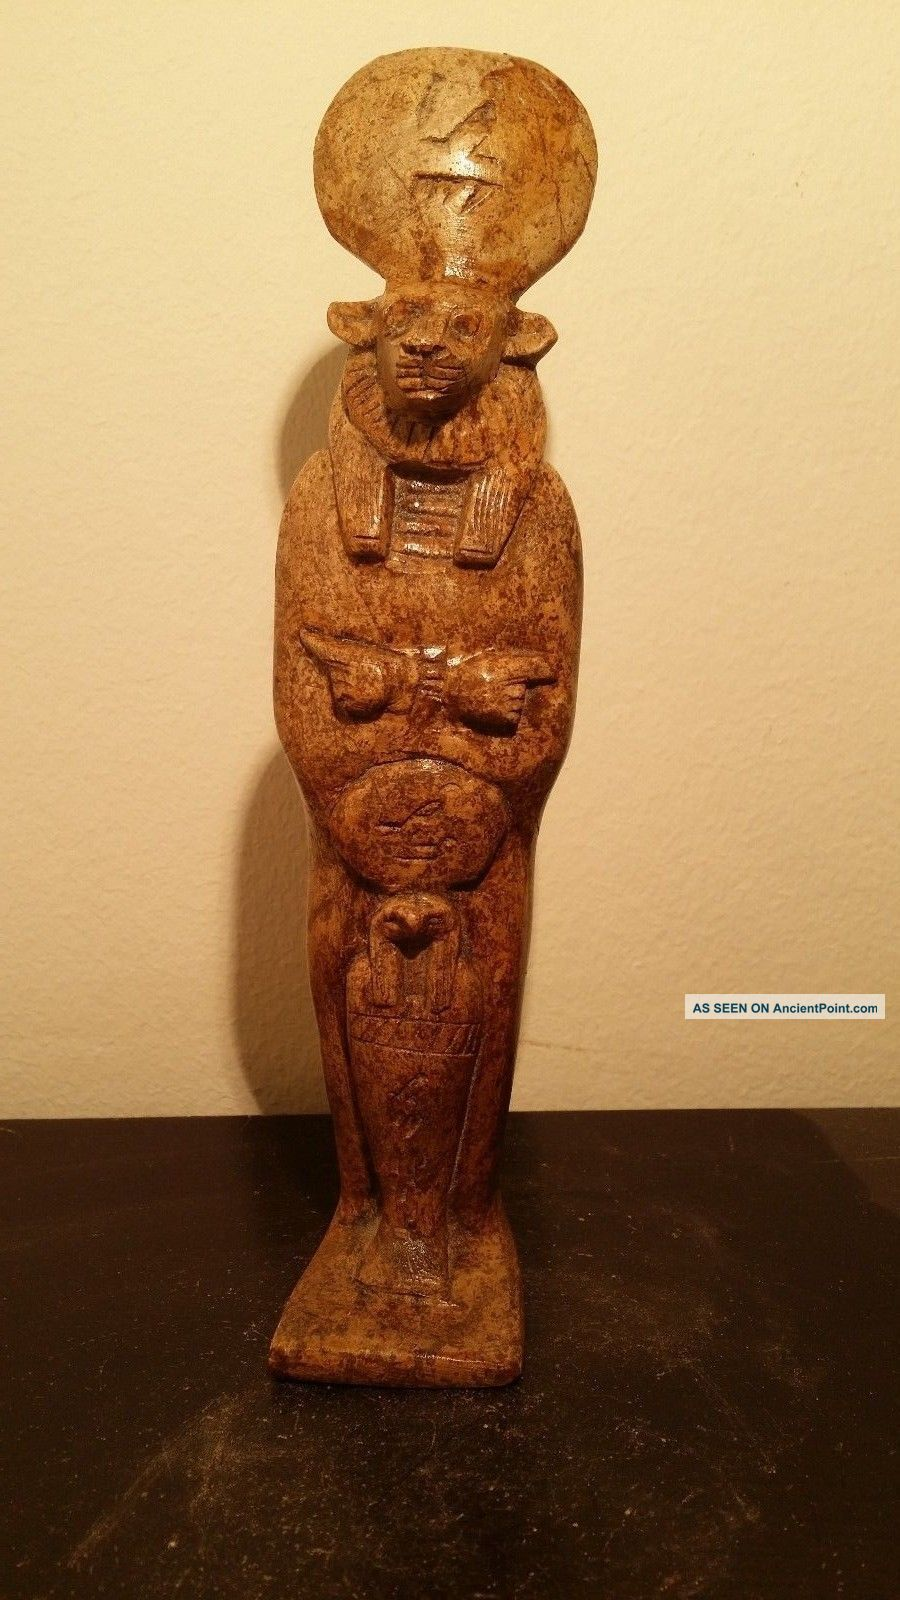 Rare Antique Ancient Egyptian Statue For God Sekhmet & God Horus (1760 - 1640 Bc) Egyptian photo